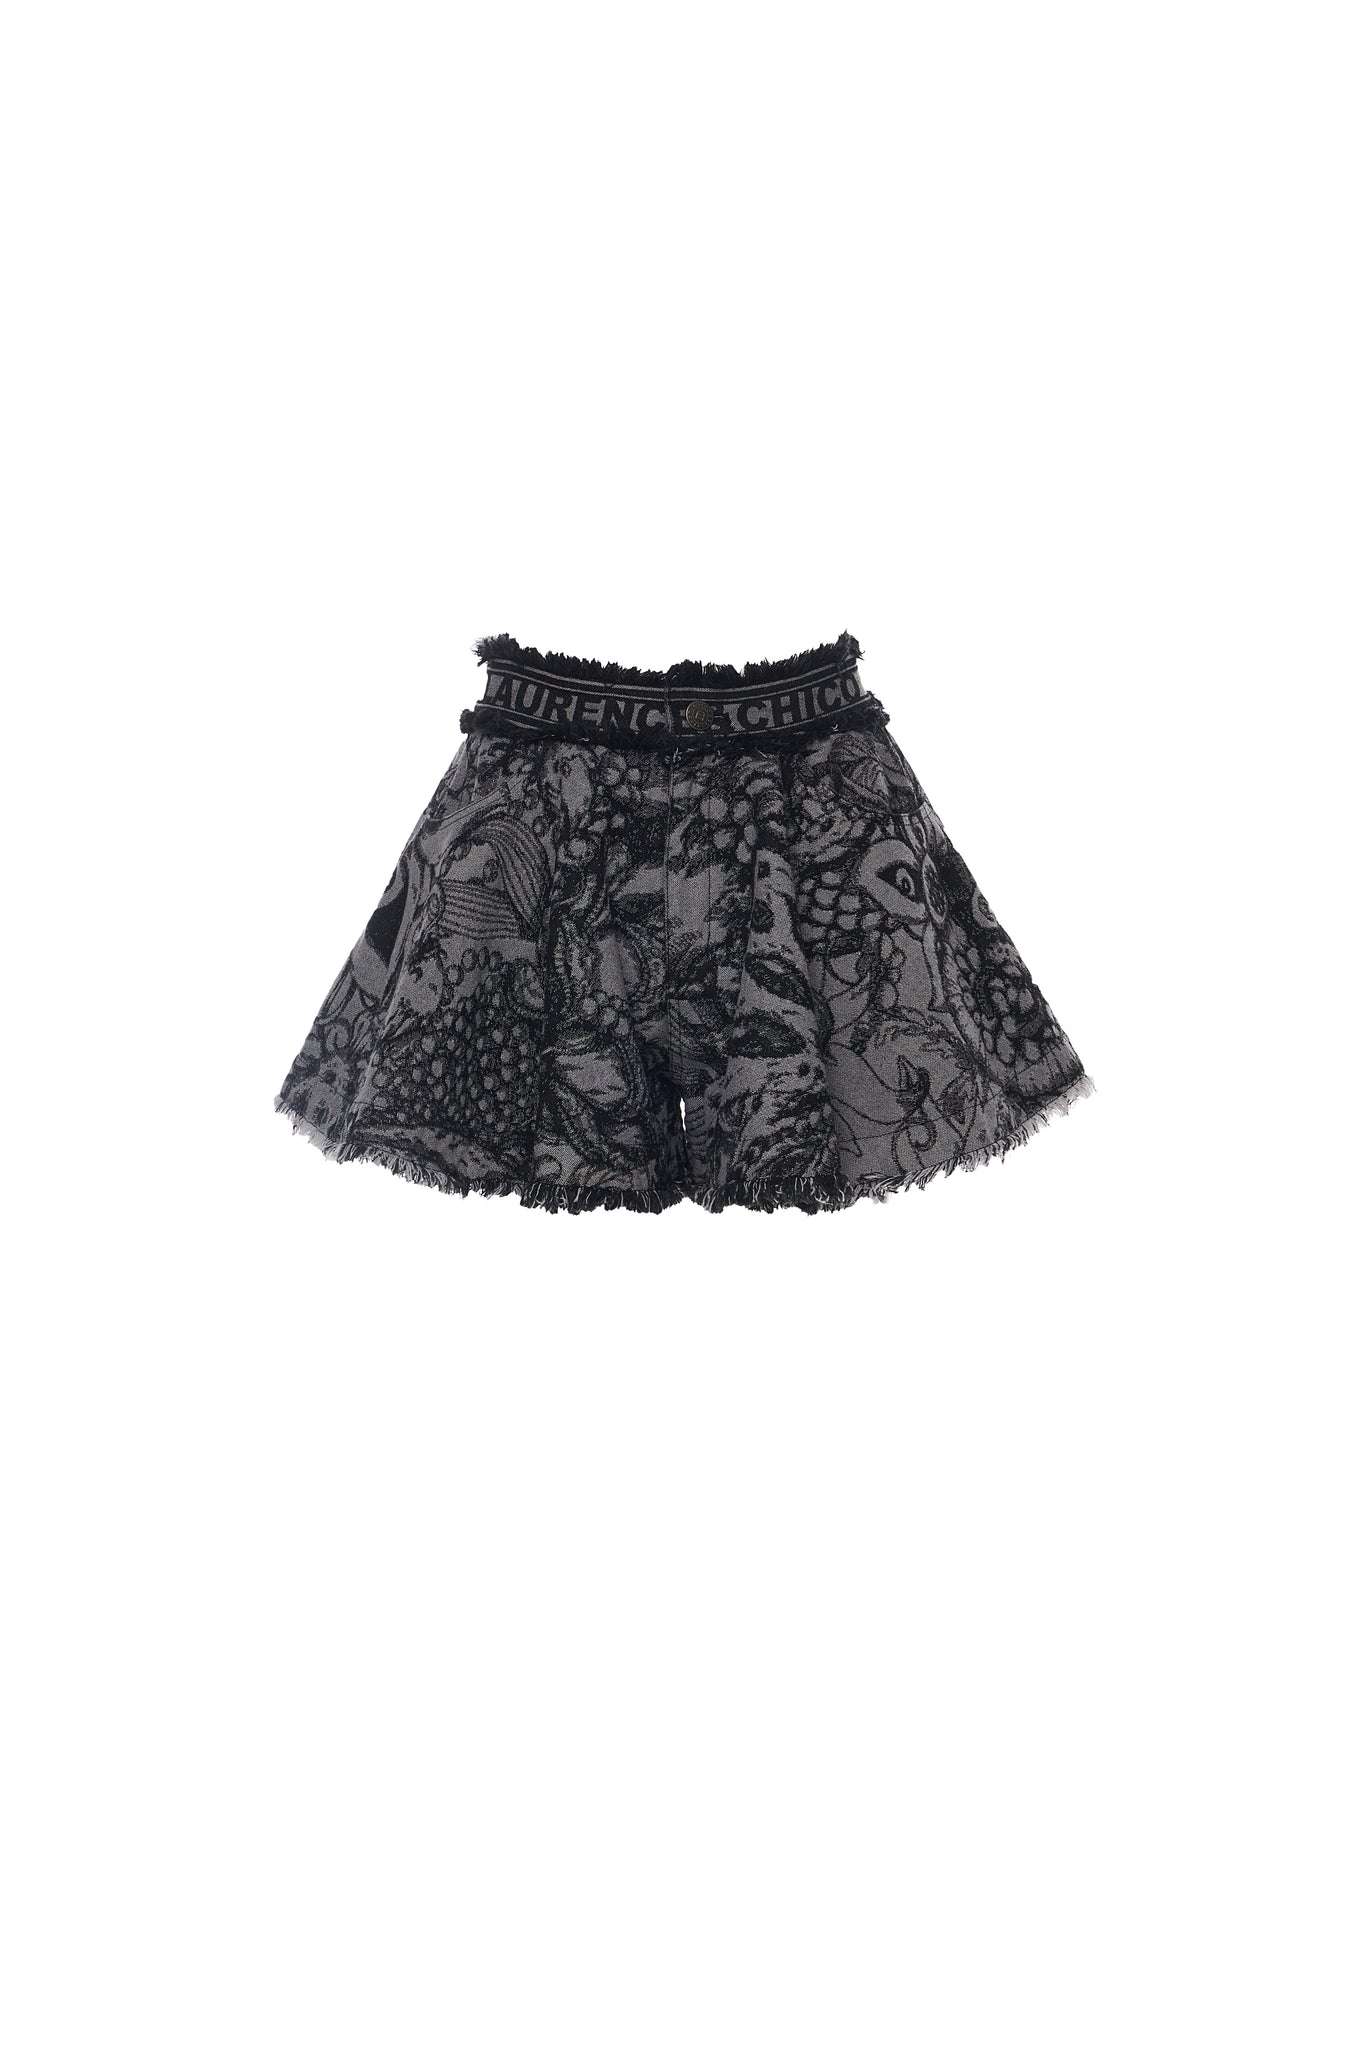 Van Dusen Garden Denim Jacquard Flared Shorts